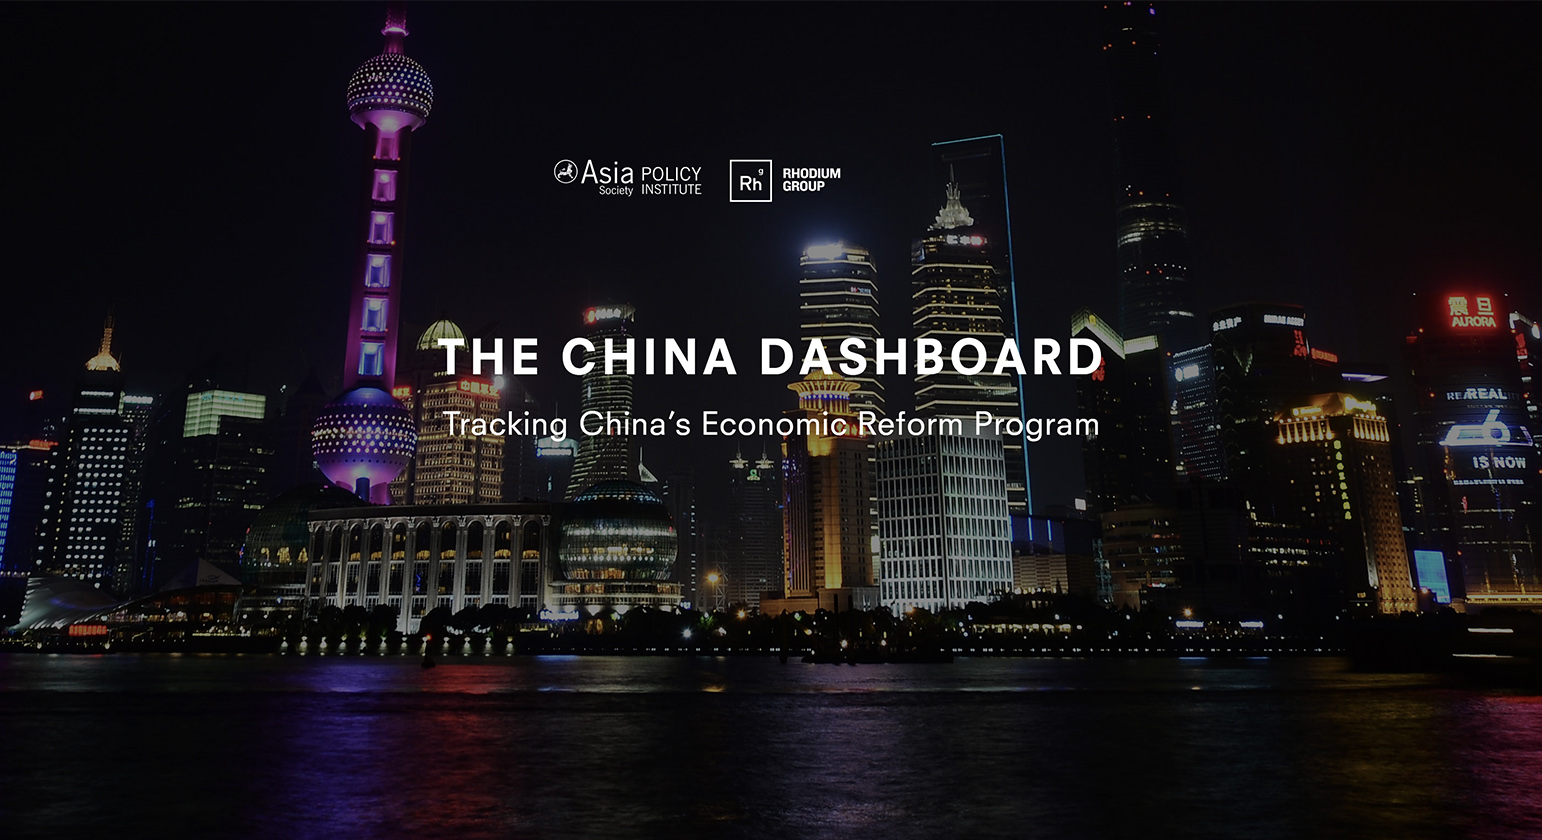 China Dashboard: Tracking China's Economic Reform Program